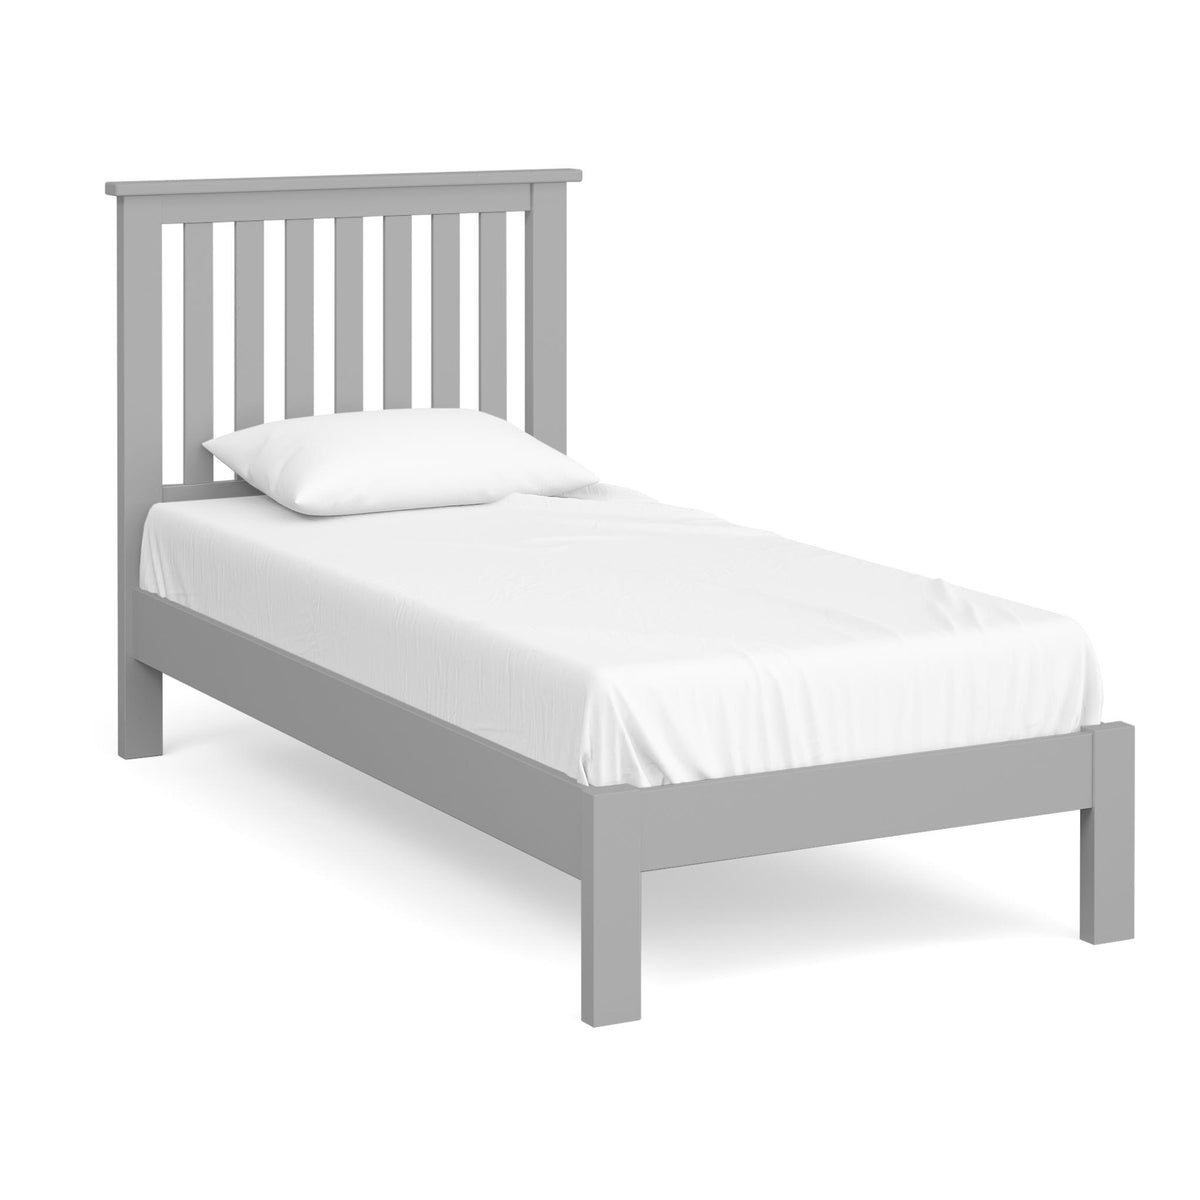 The Cornish Grey 3' Single Wooden Bed Frame from Roseland Furniture